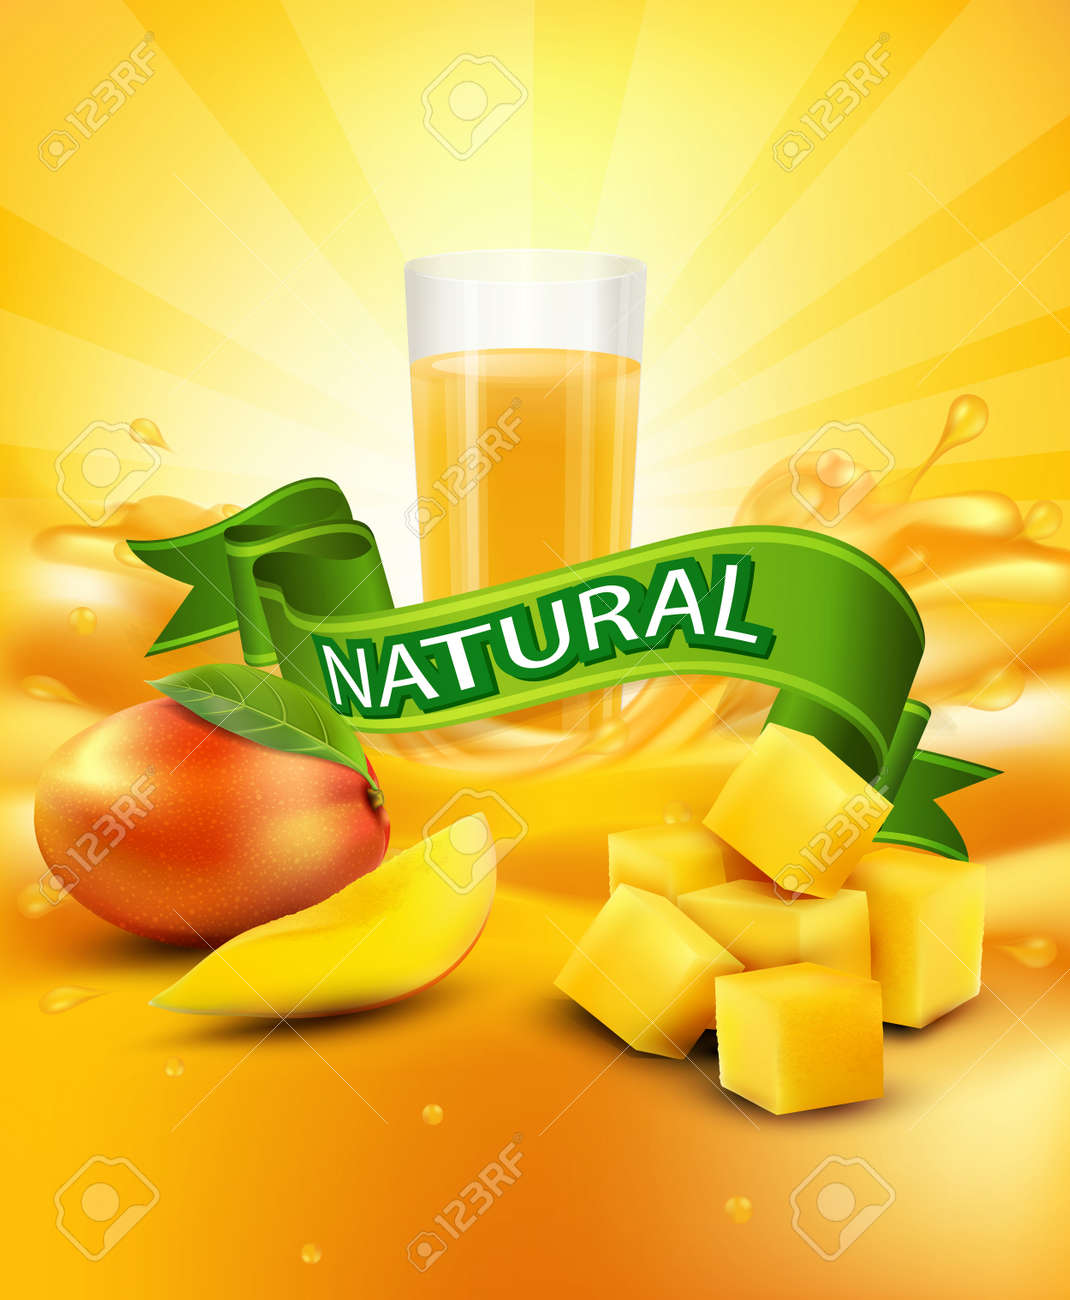 Vector Vector Background With Mango, A Glass Of Juice, Slices Of Mango,  Green How To Cut